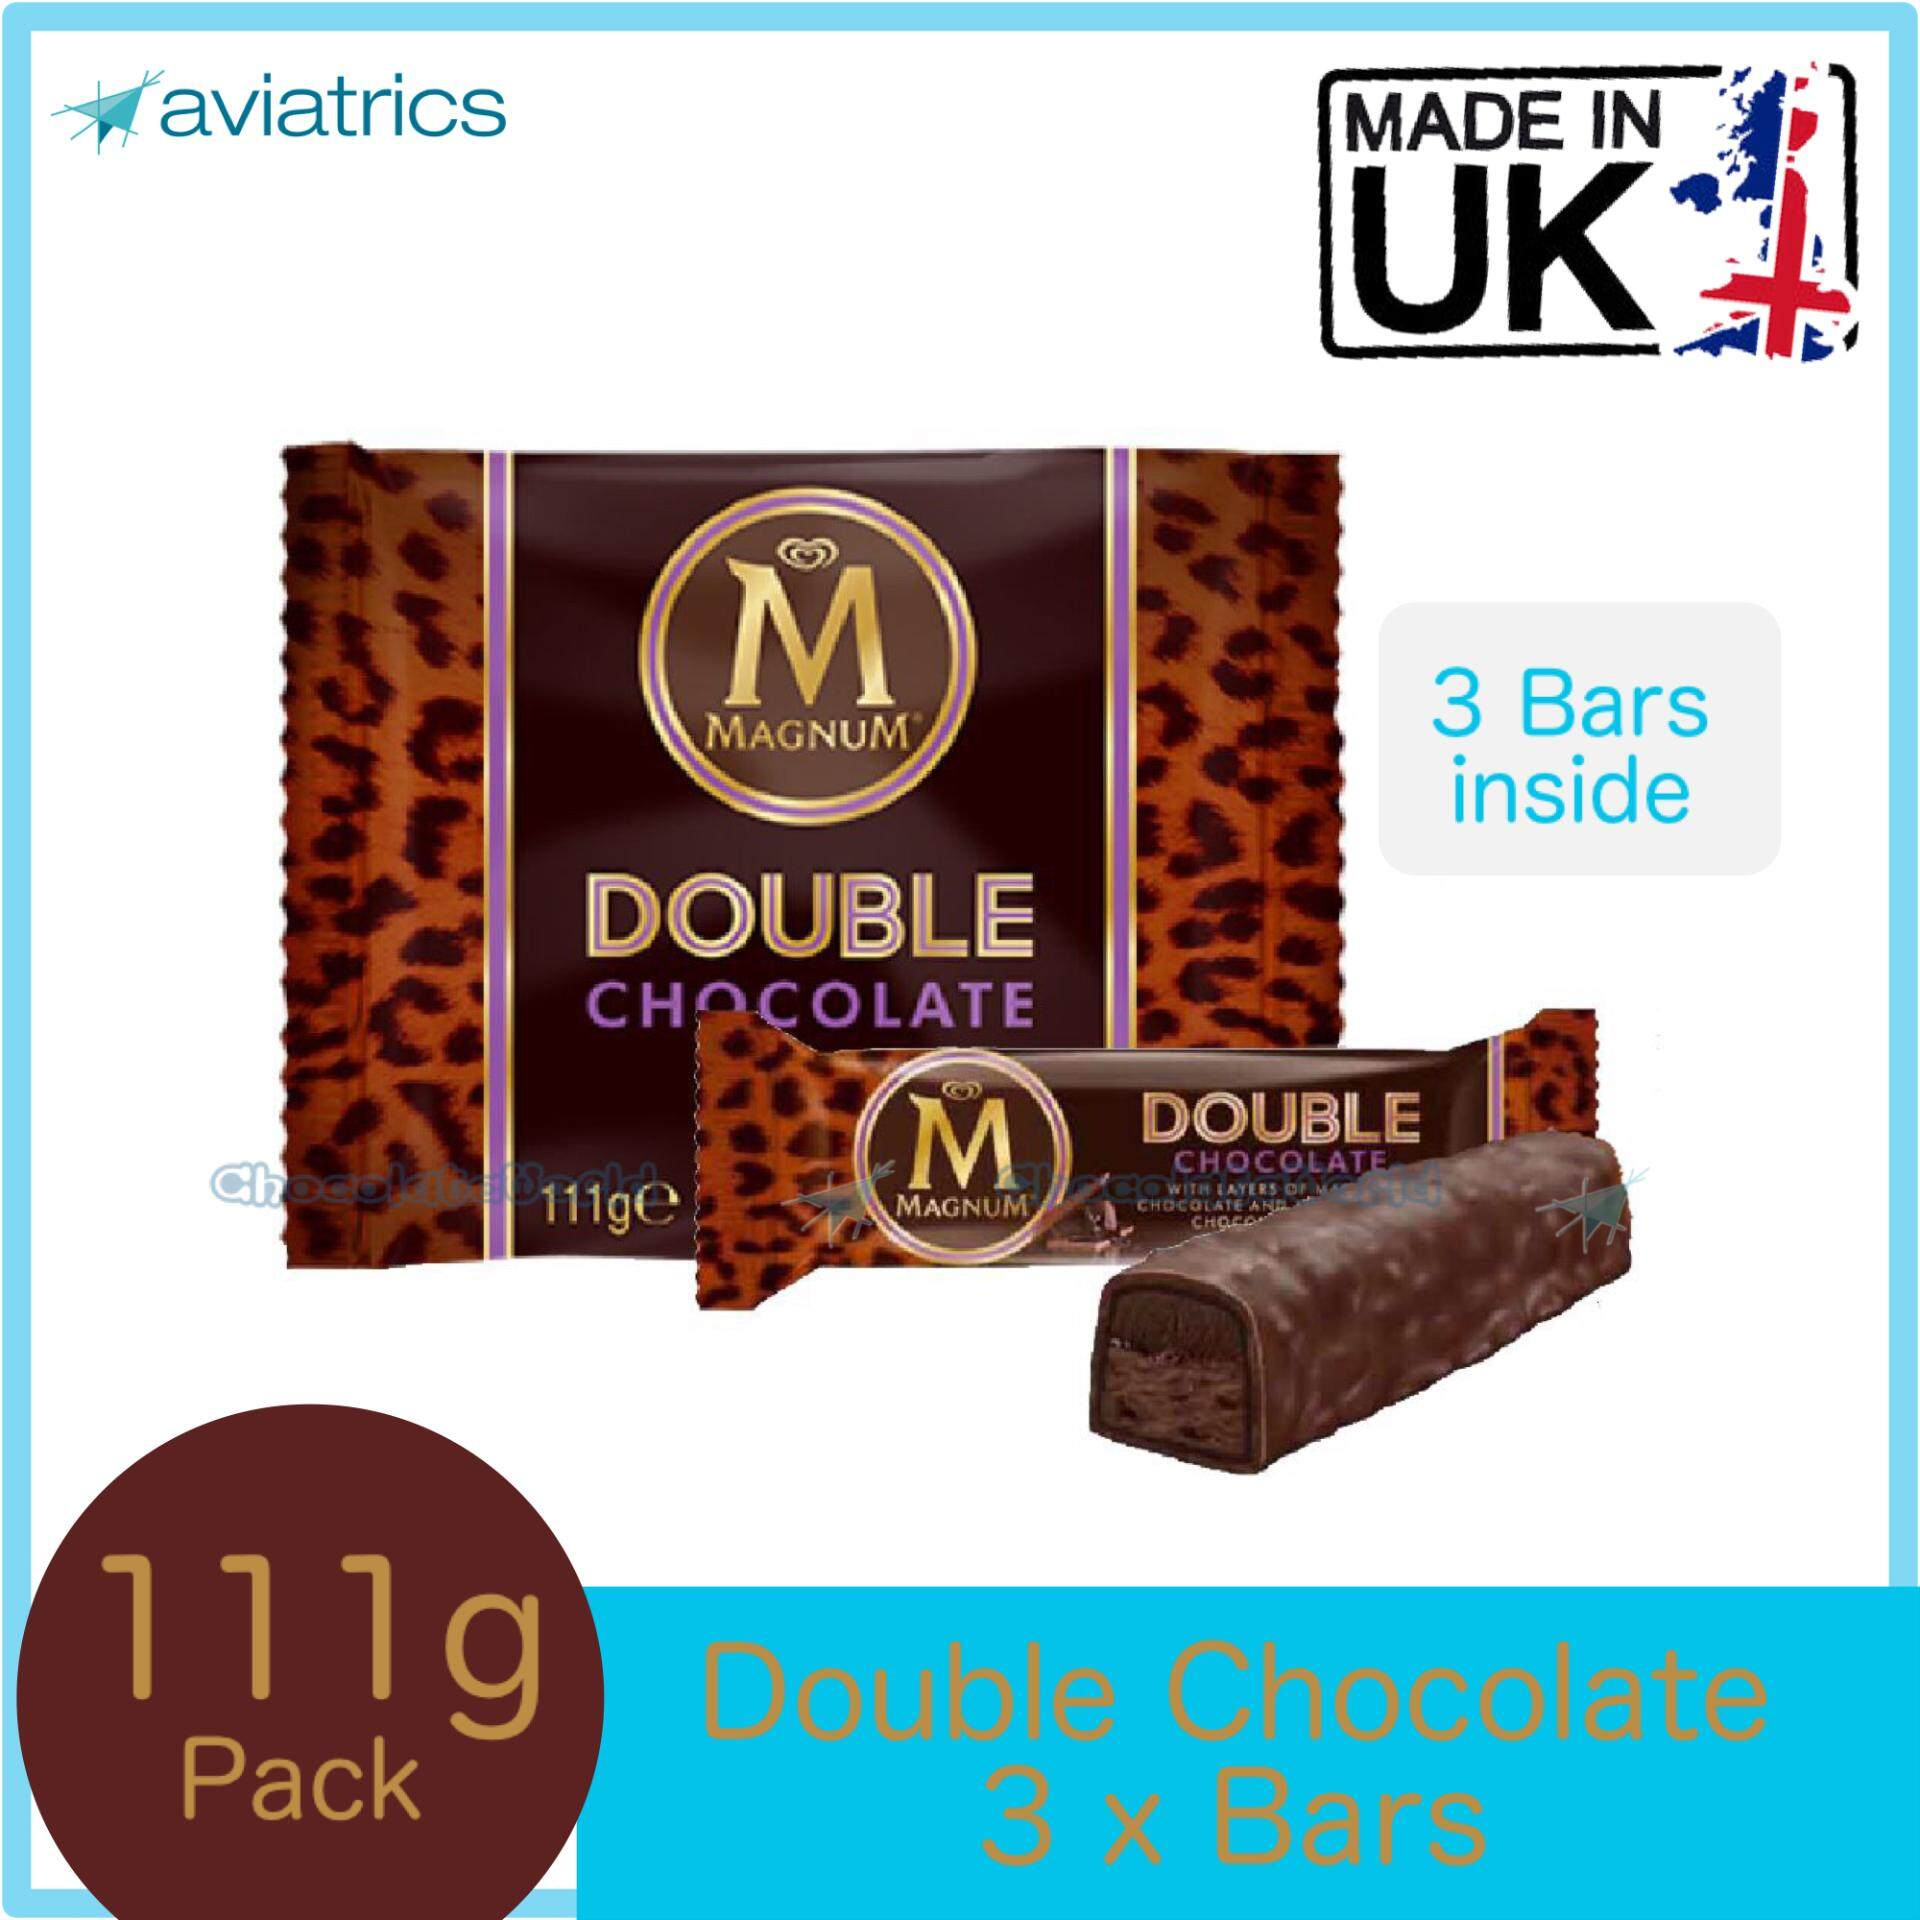 Magnum Double Chocolate Bar 111g (Made in UK)